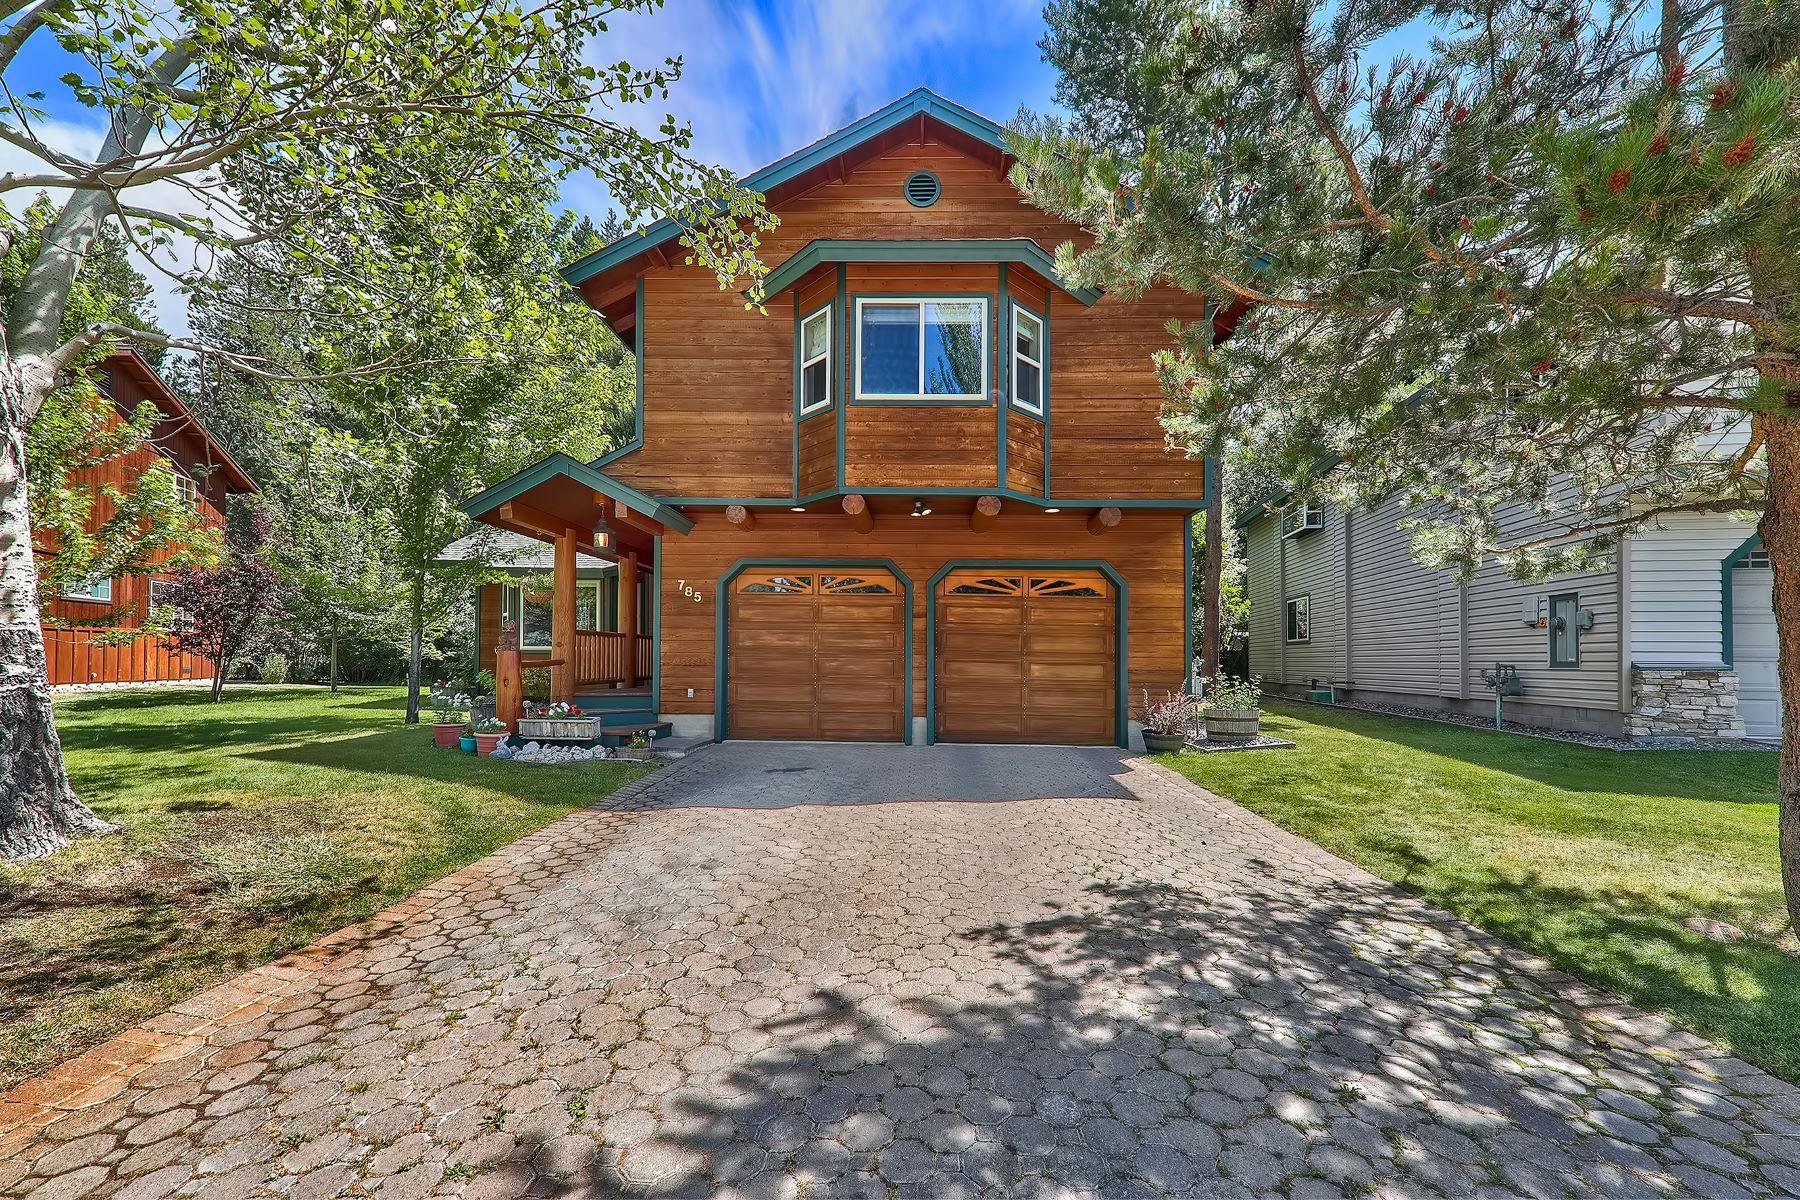 Single Family Homes for Active at 785 Tuolumne Drive, South Lake Tahoe, CA 96150 785 Tuolumne Drive South Lake Tahoe, California 96150 United States